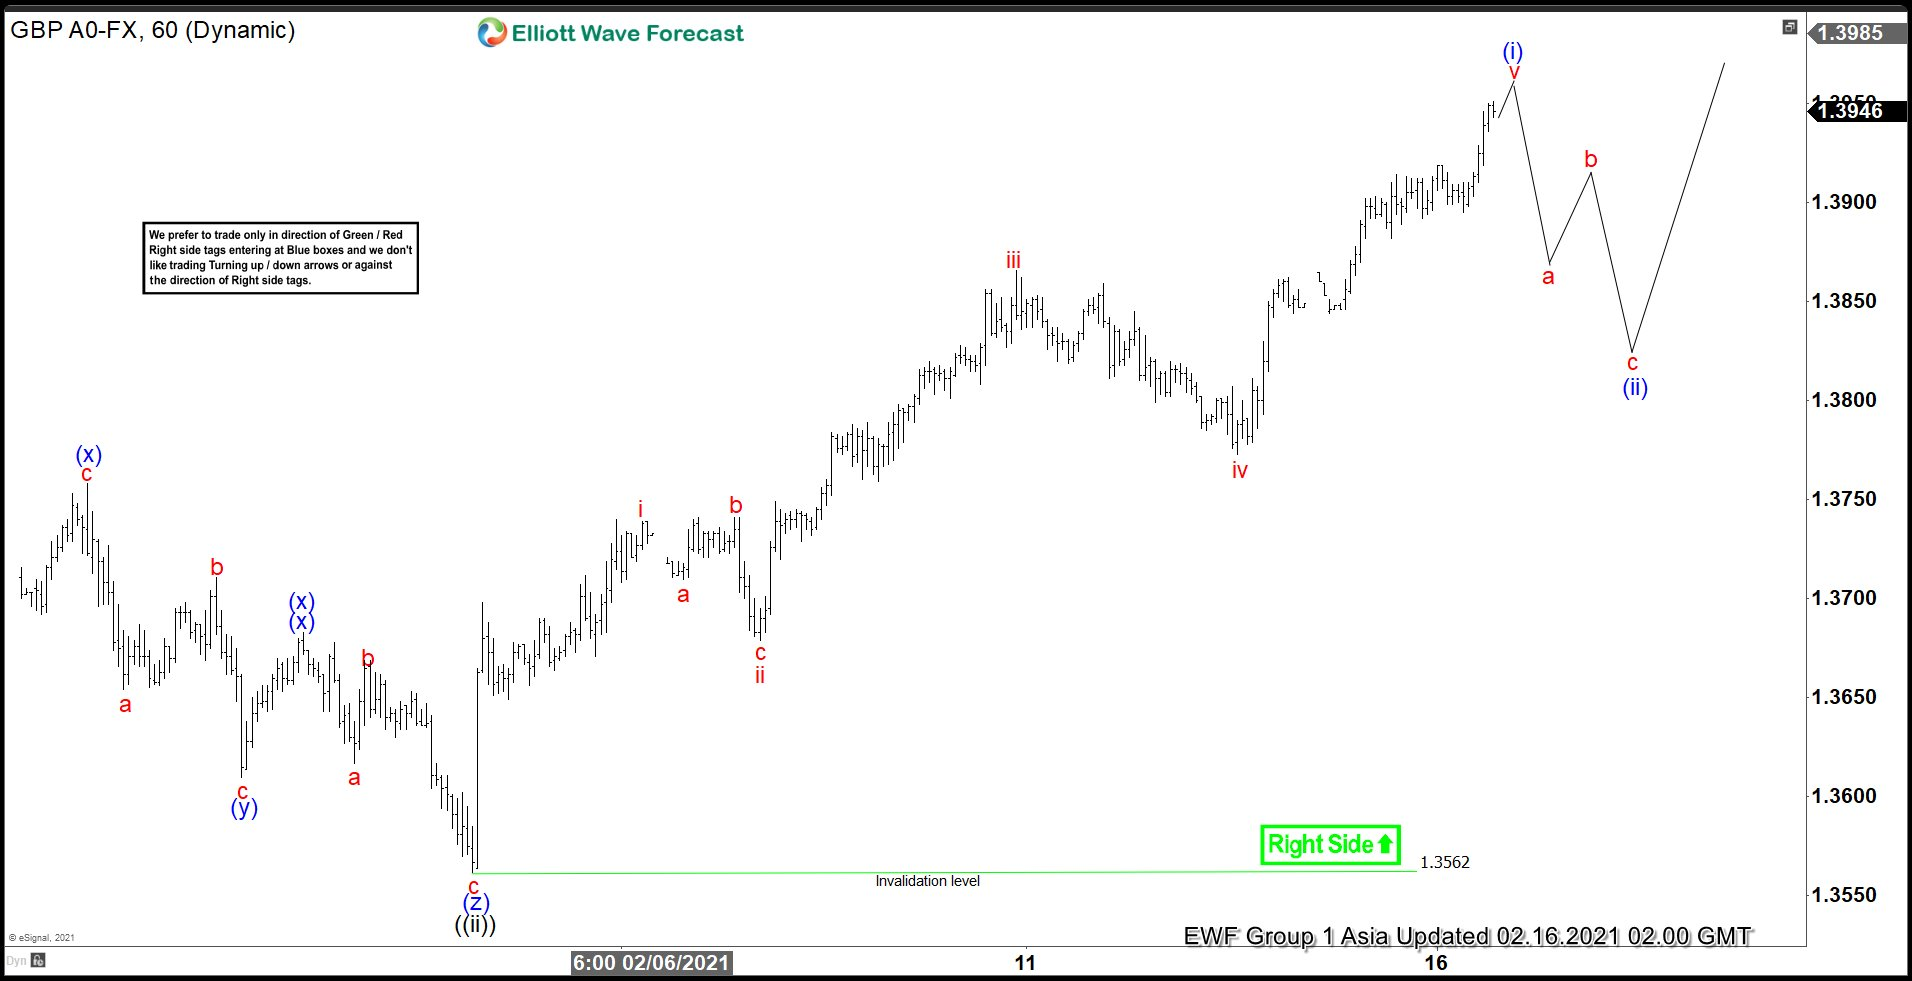 Elliott Wave View: Buying the Dips in GBPUSD